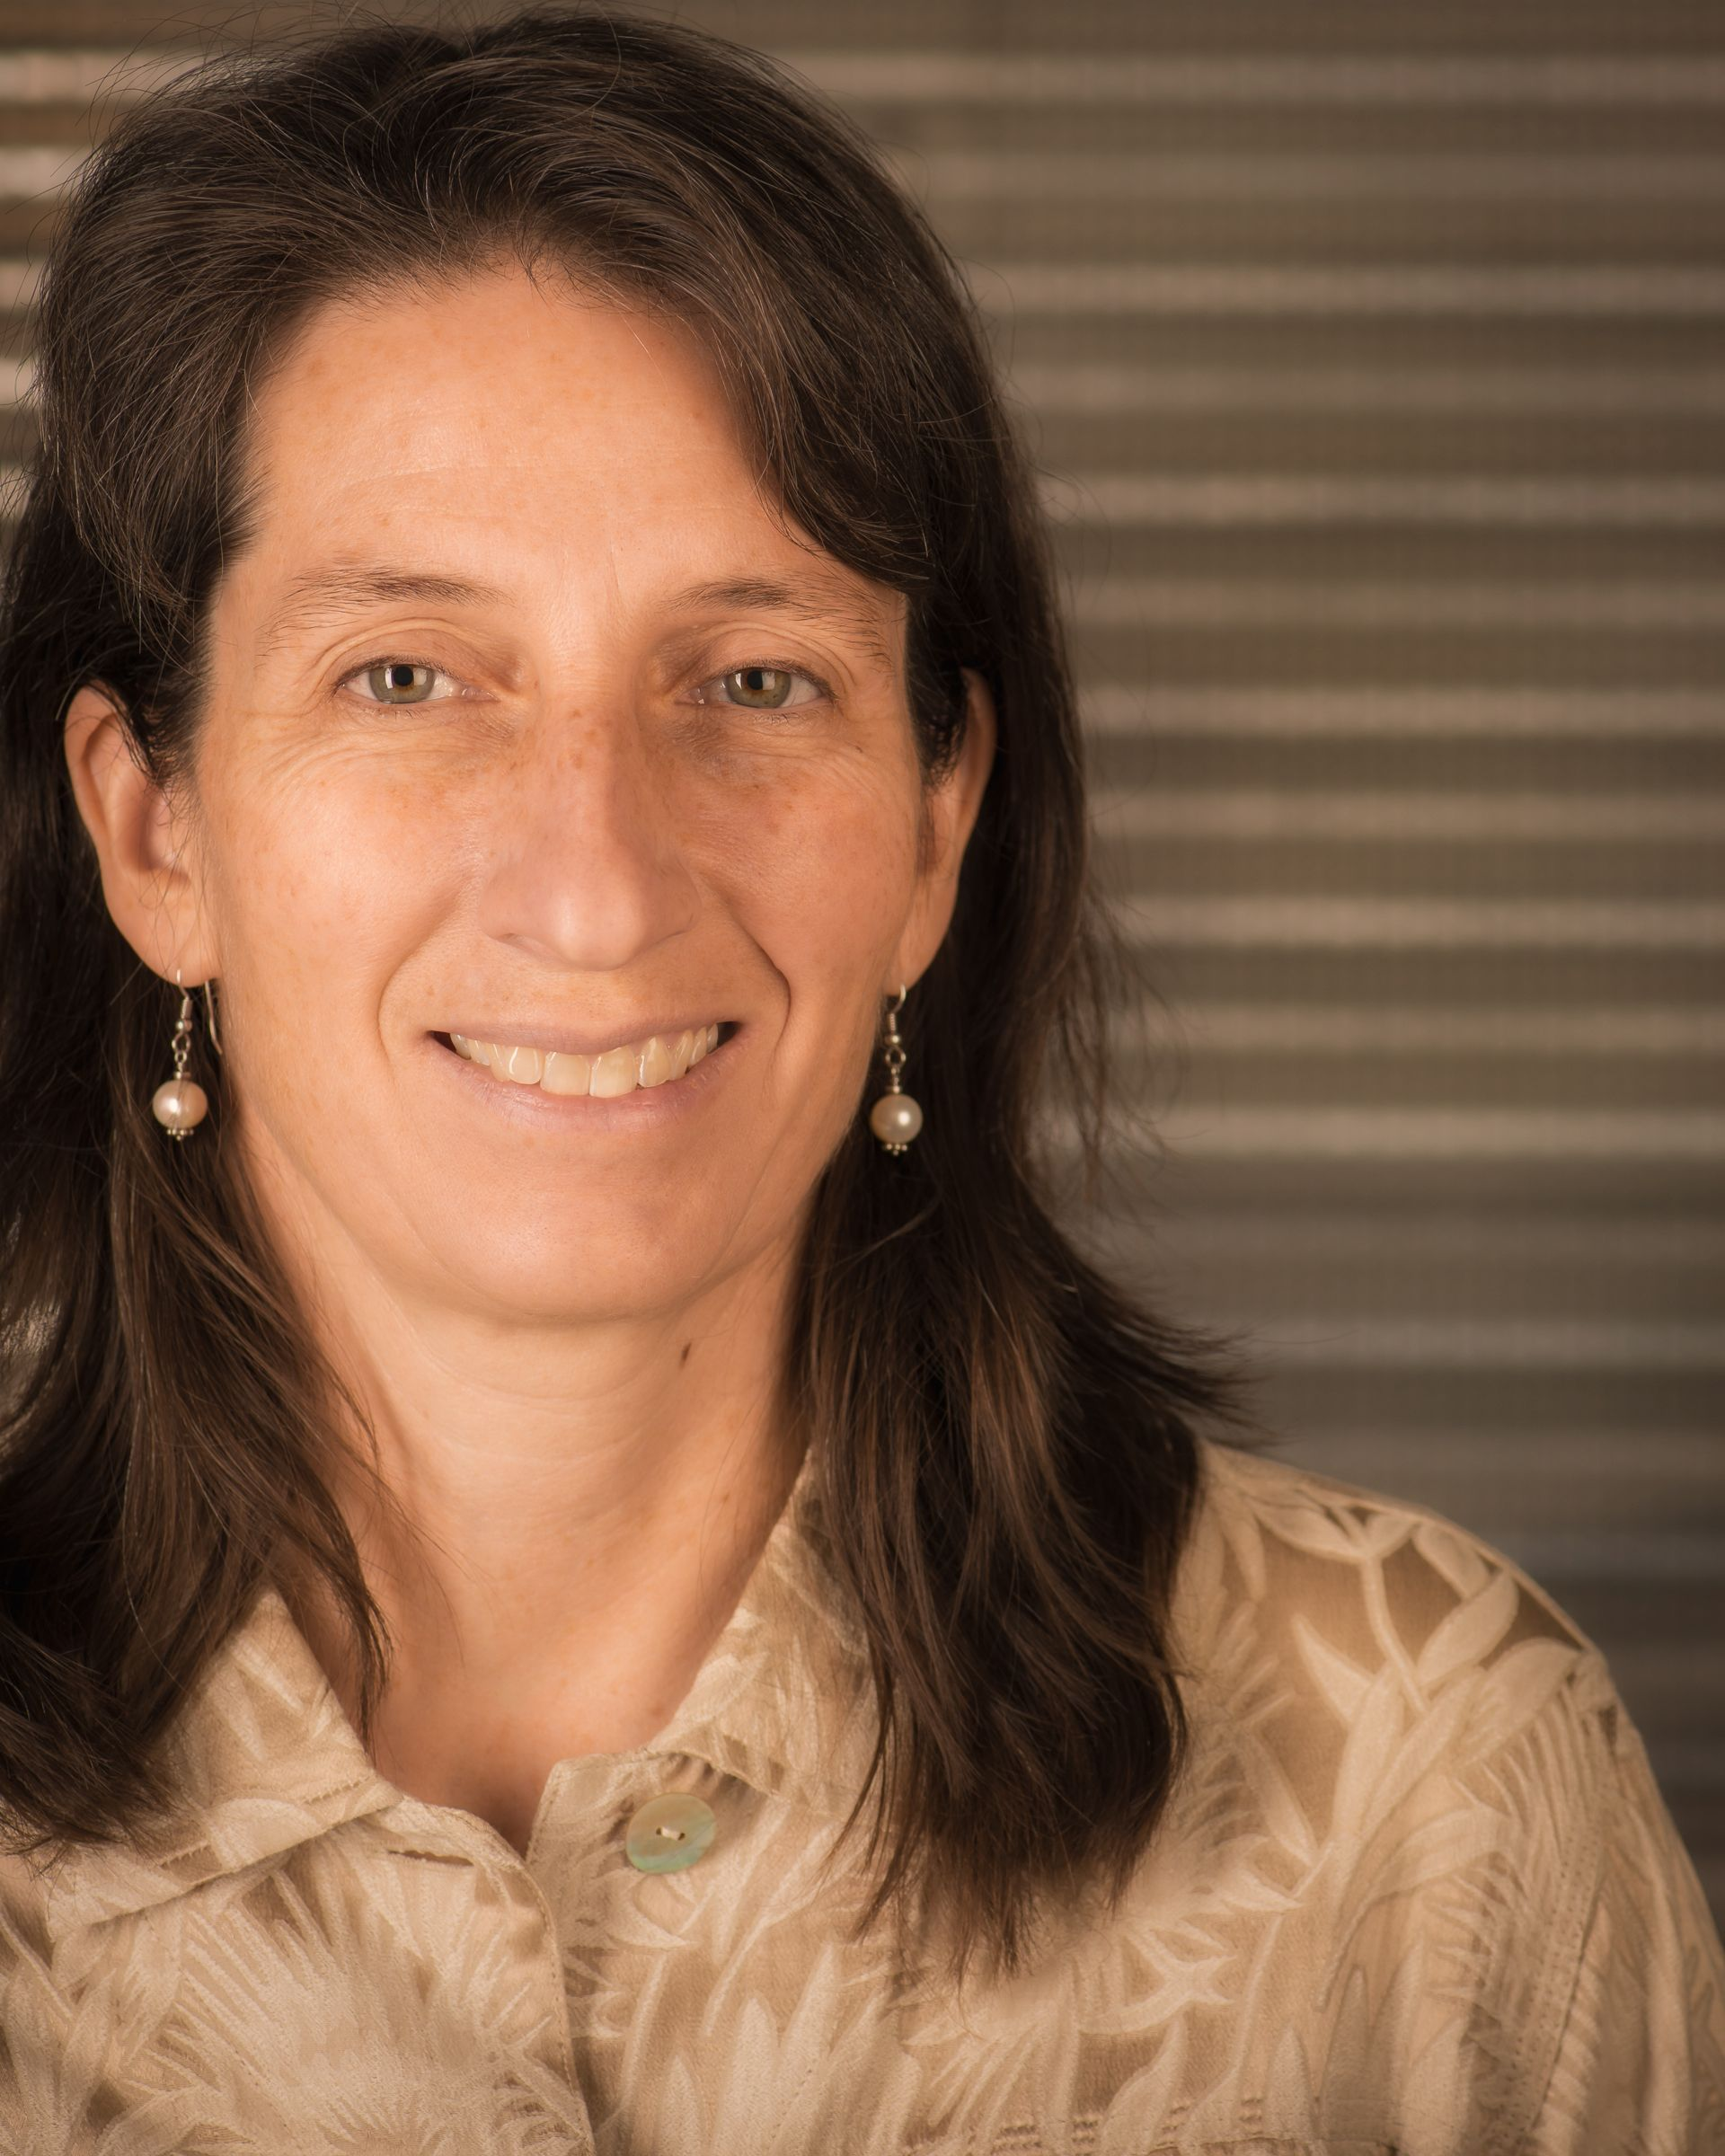 Nserc Chair Design Engineering Outdoor Fire Pit With Chairs The Featured Engineer For March 1st Is Catherine Mavriplis